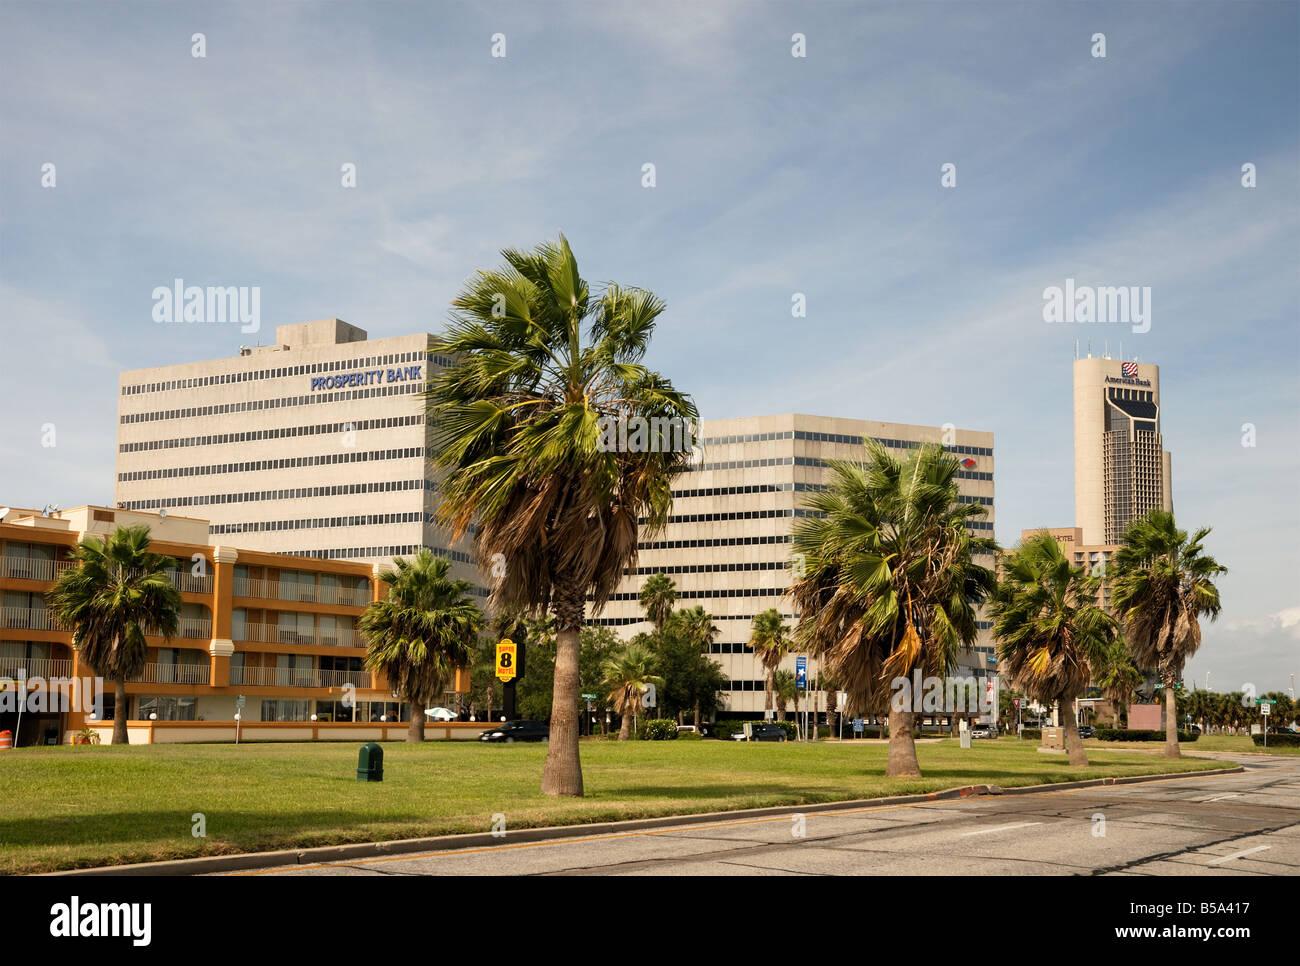 Corpus Christi City Stock Photos & Corpus Christi City Stock Images ...